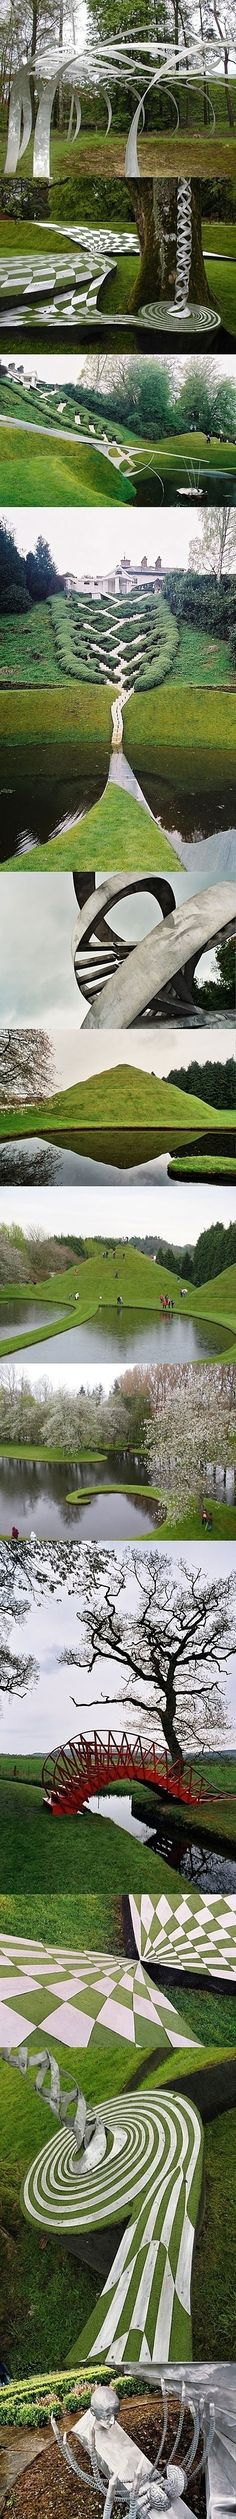 A must visit some day>>>The Garden of Cosmic Speculation in Scotland